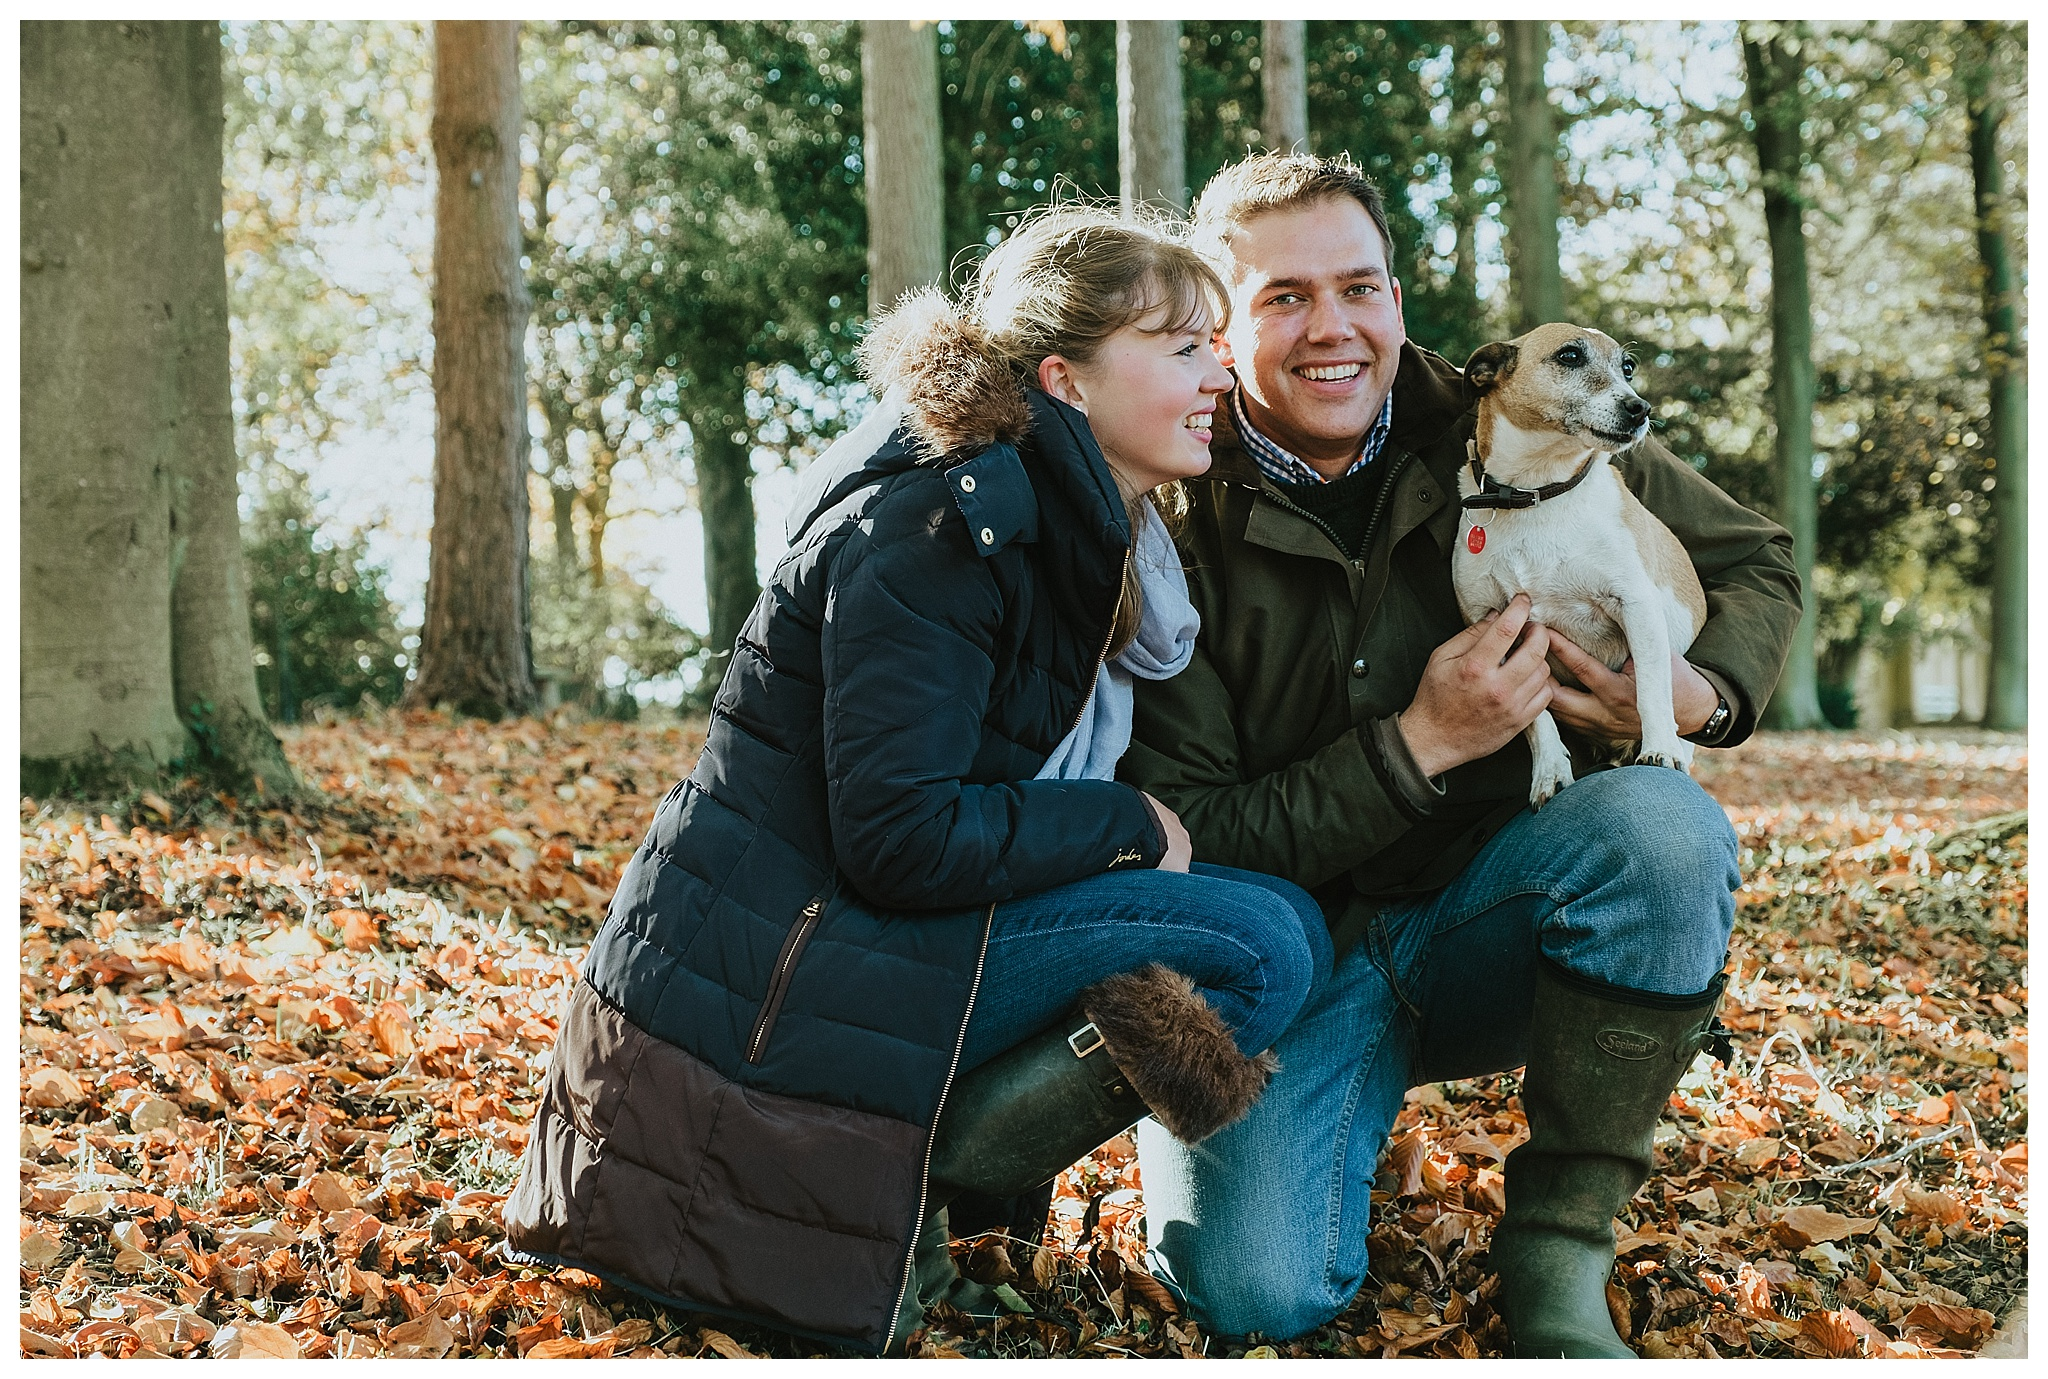 An engagement photo shoot at Stowe National Trust